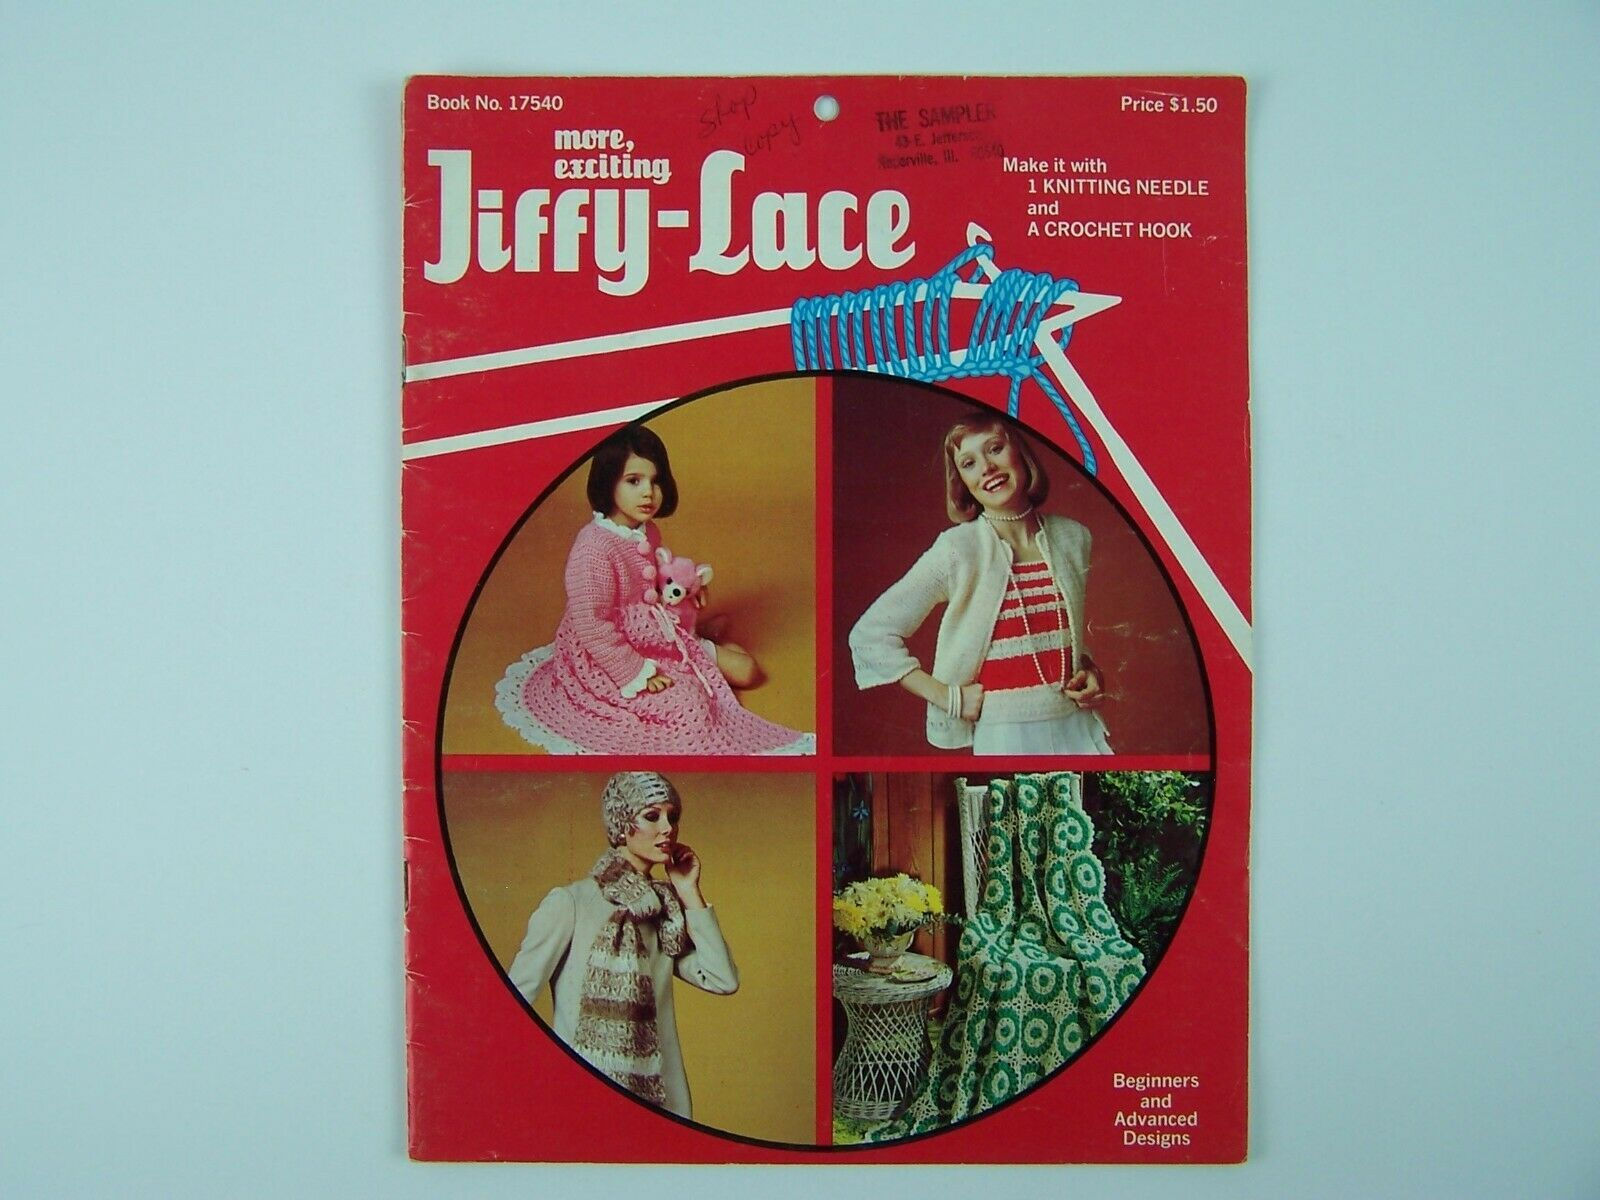 Exciting Jiffy-Lace Knitting & Crochet Pattern Booklets 1970s - $24.74